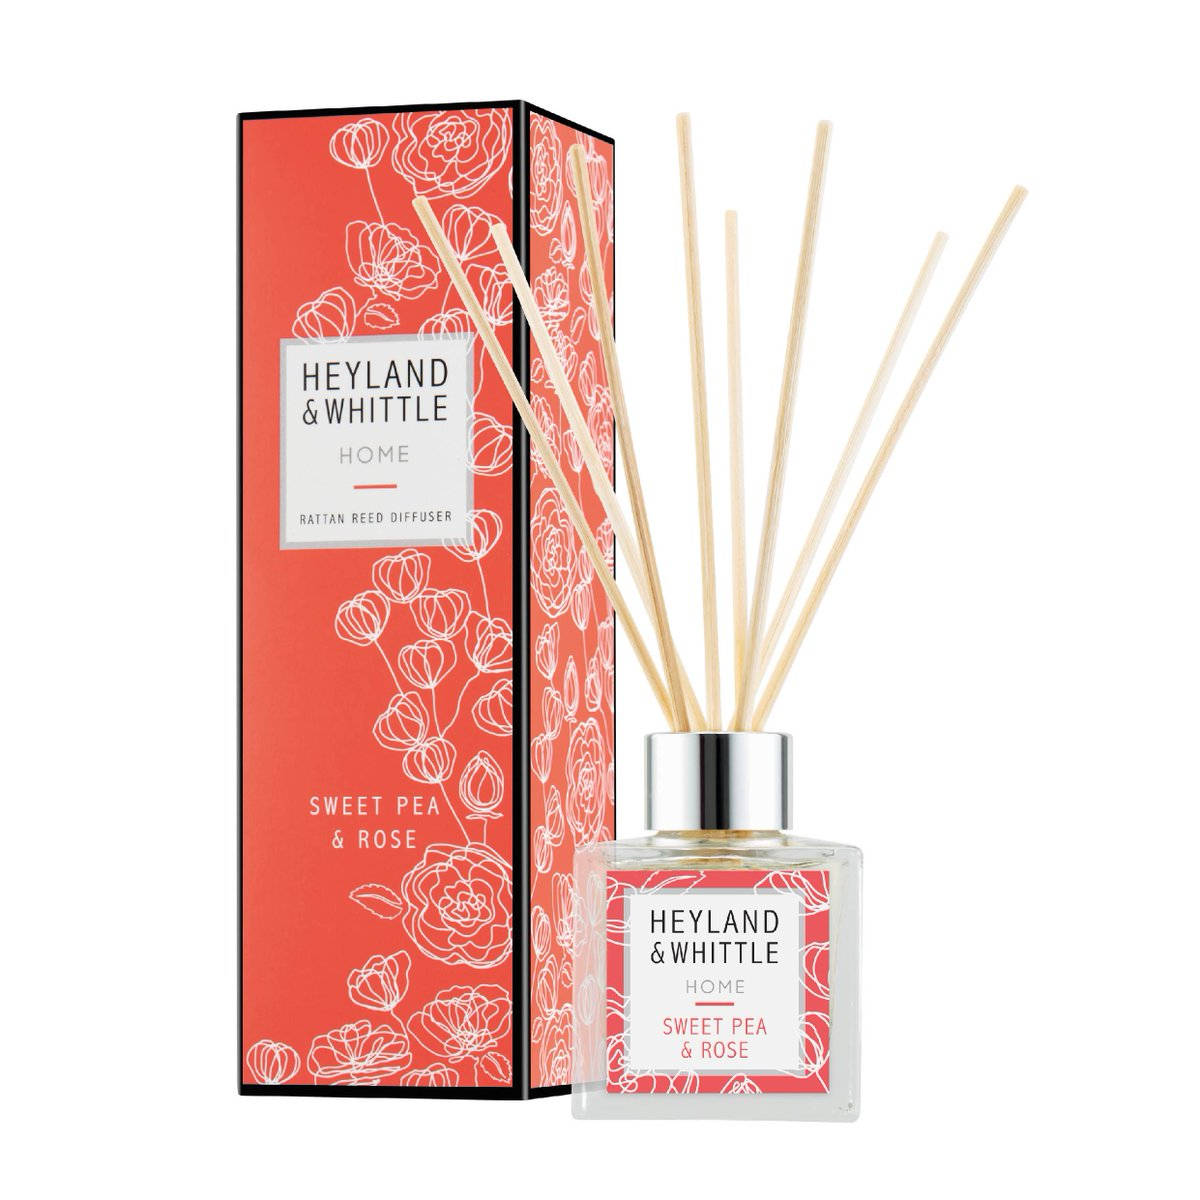 #Win a Sweet Pea & Rose #diffuser! To enter, like this post and #TagAFriend. Best of luck to all! #FreebieFriday #LikeToWin #Giveaway #HomeFragrance #CompetitionTime #GiftIdeas #luxuryscents #bestscents #reeddiffuser #greatgiftideas<br>http://pic.twitter.com/bUrwxc7R2P